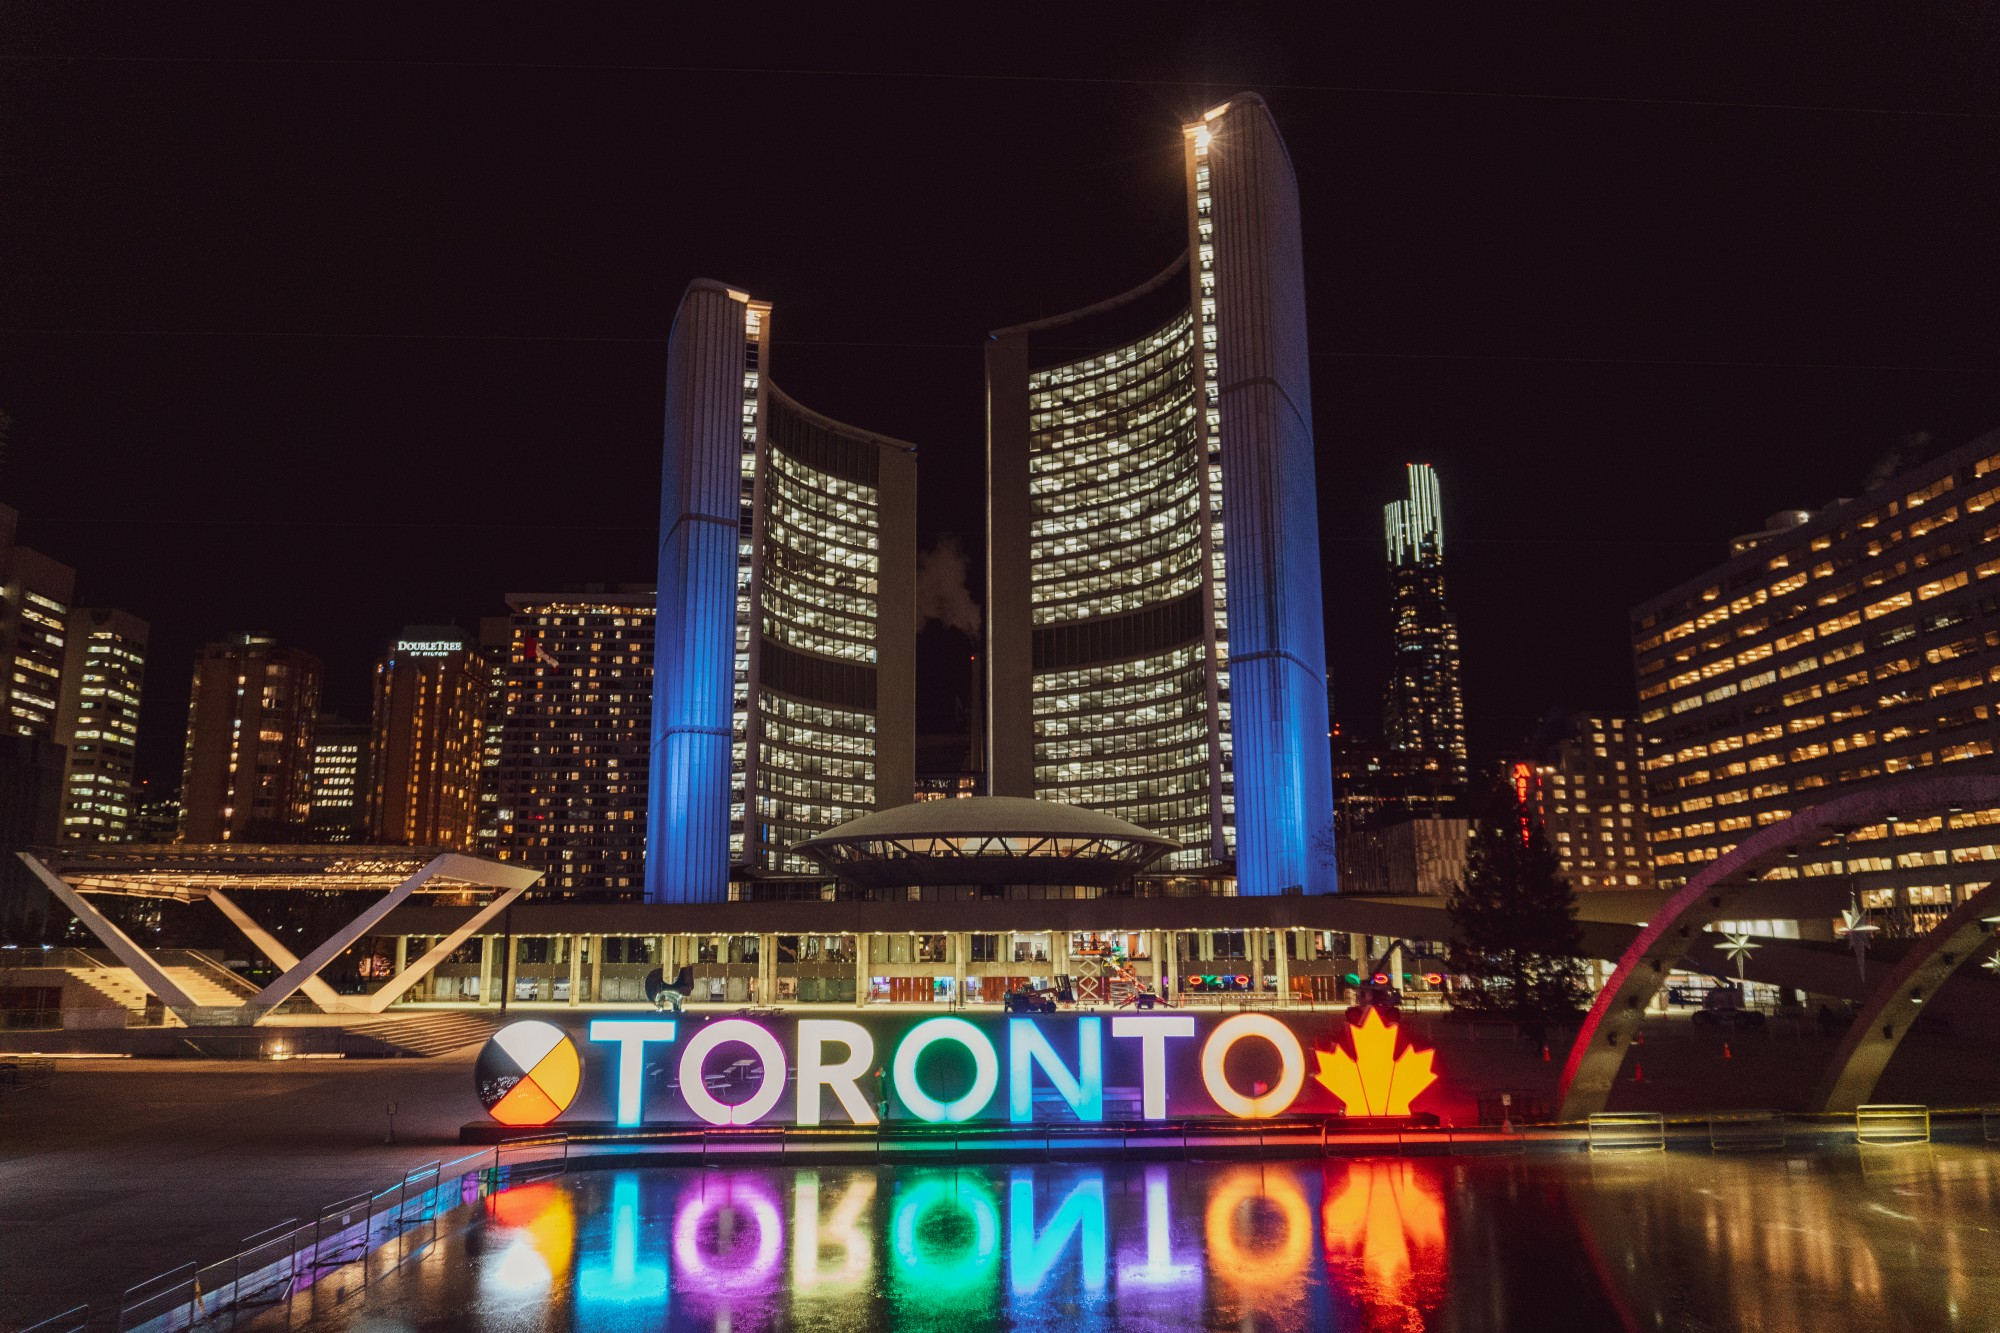 Lit-up Toronto sign in against Toronto skyline at night